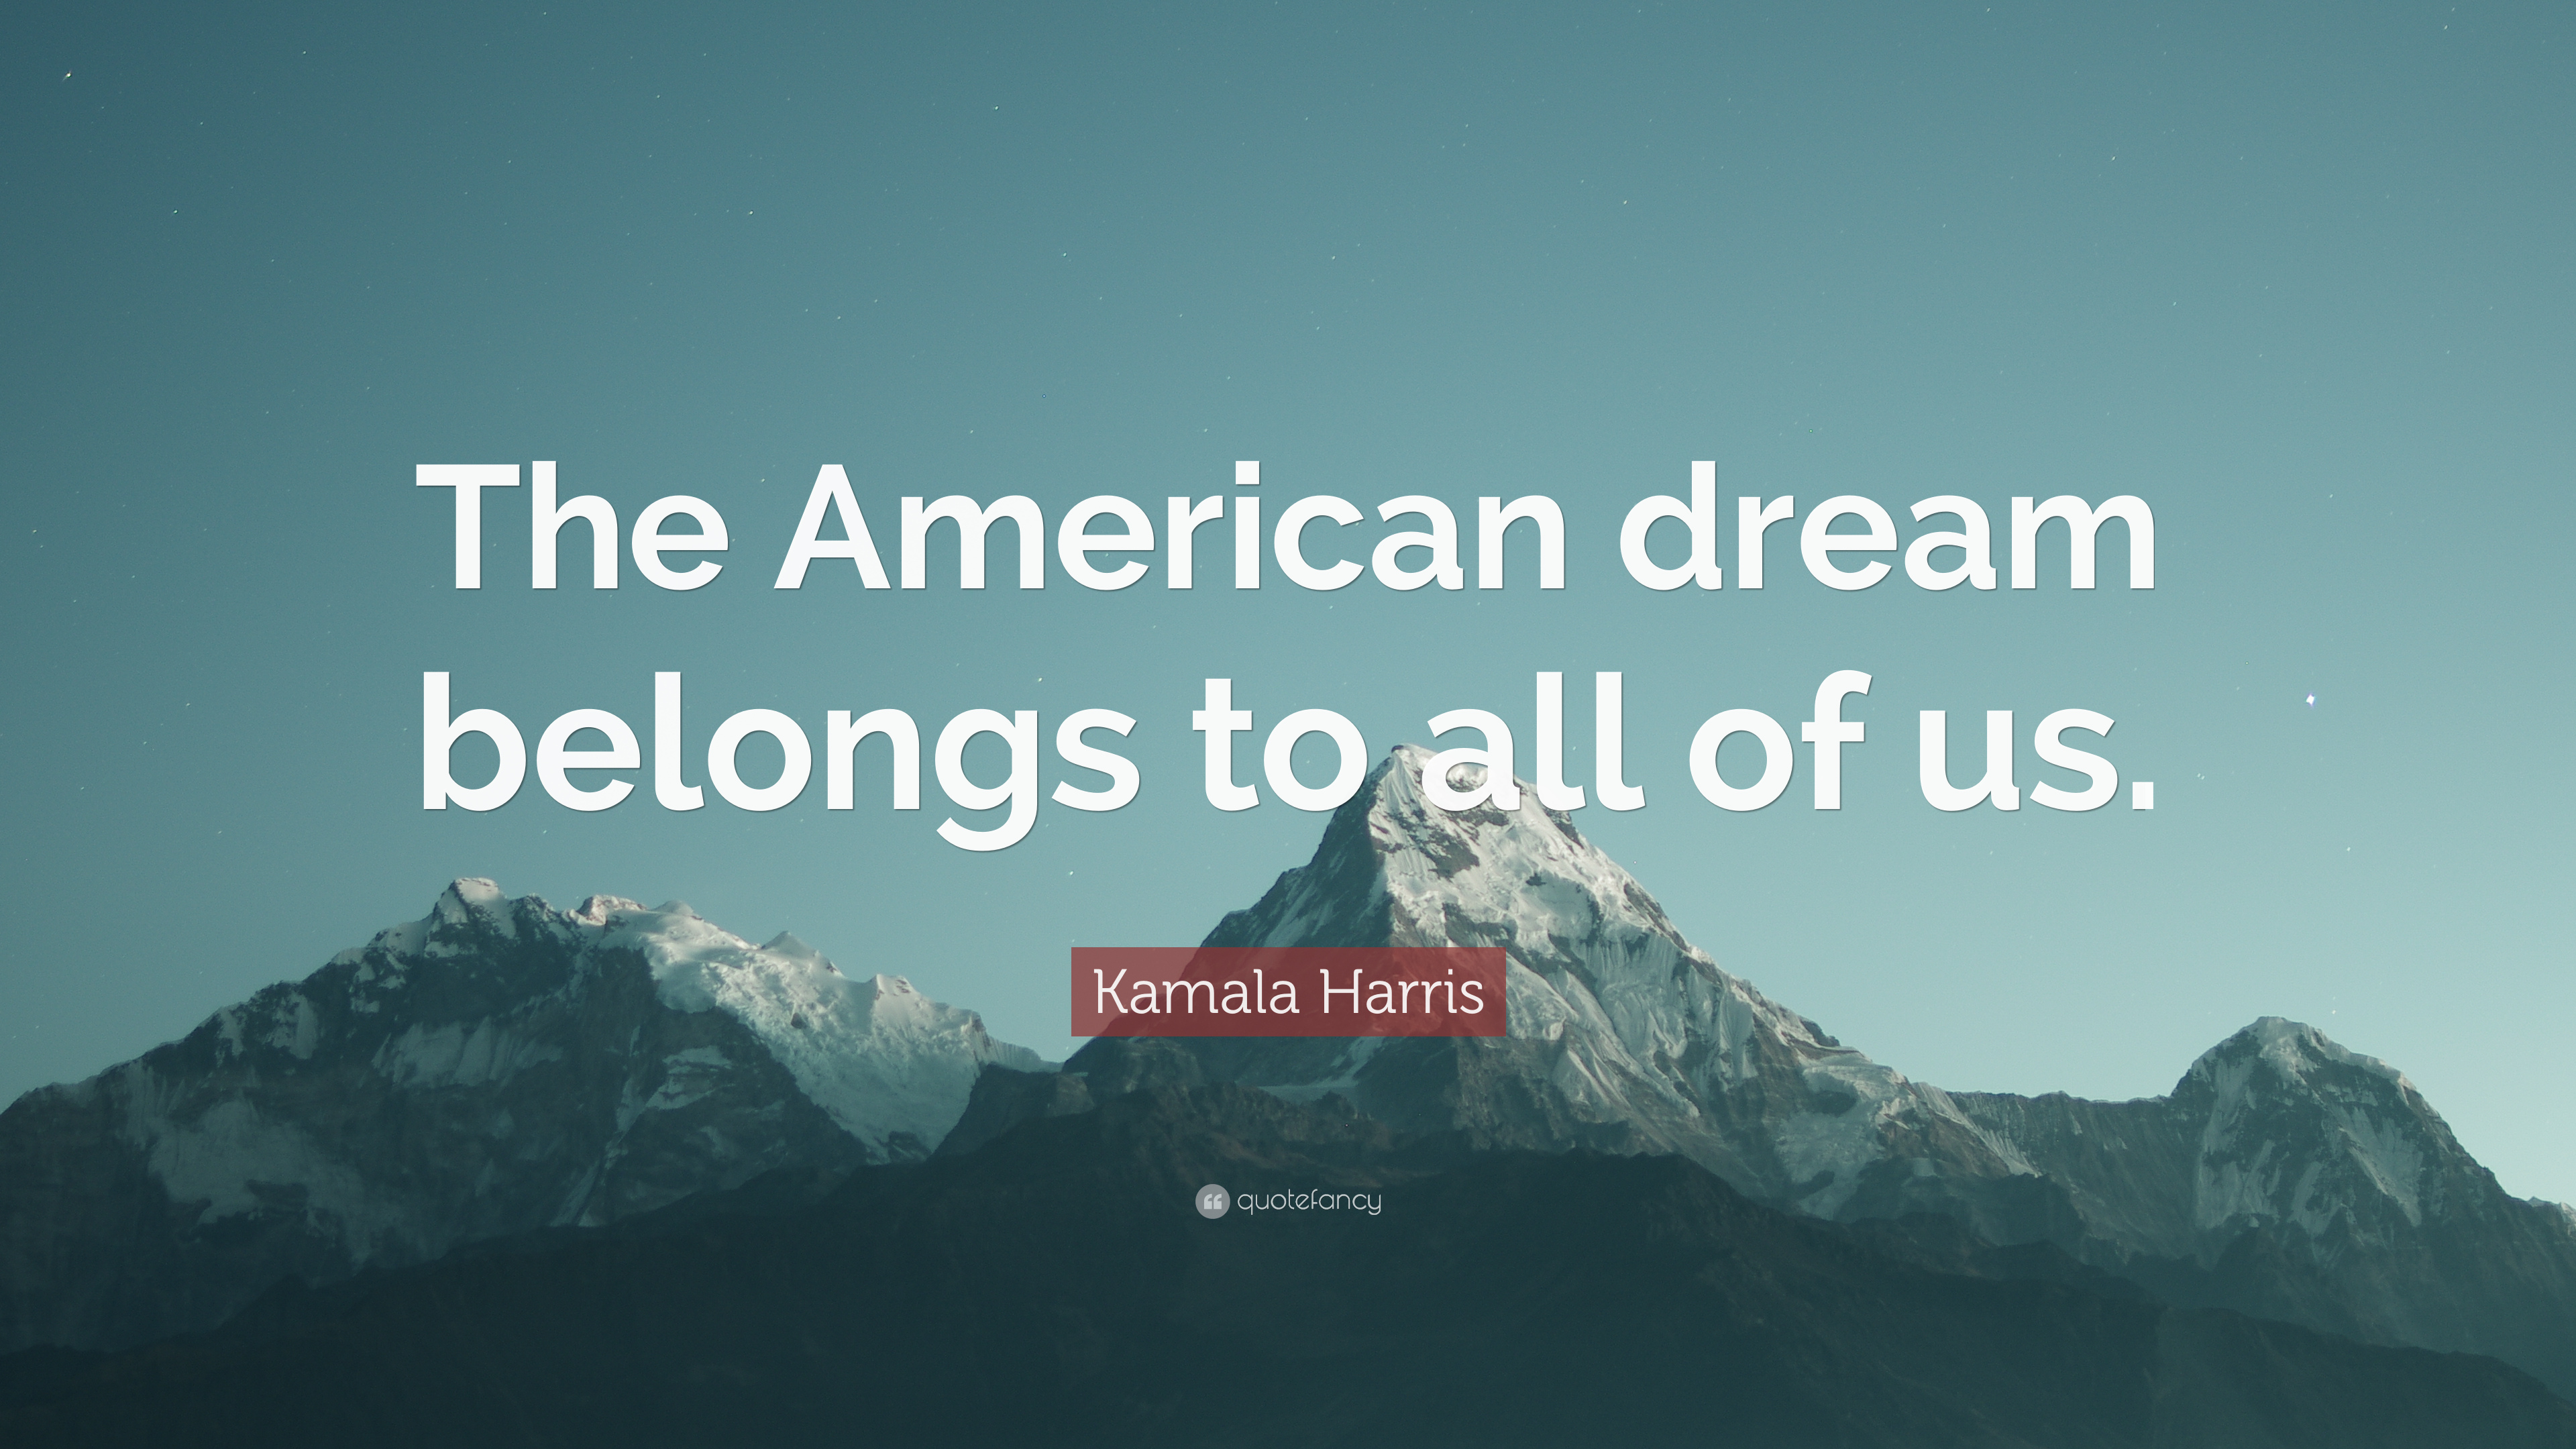 Quotes About The American Dream Quotes About The American Dream Alluring Top 25 American Dream